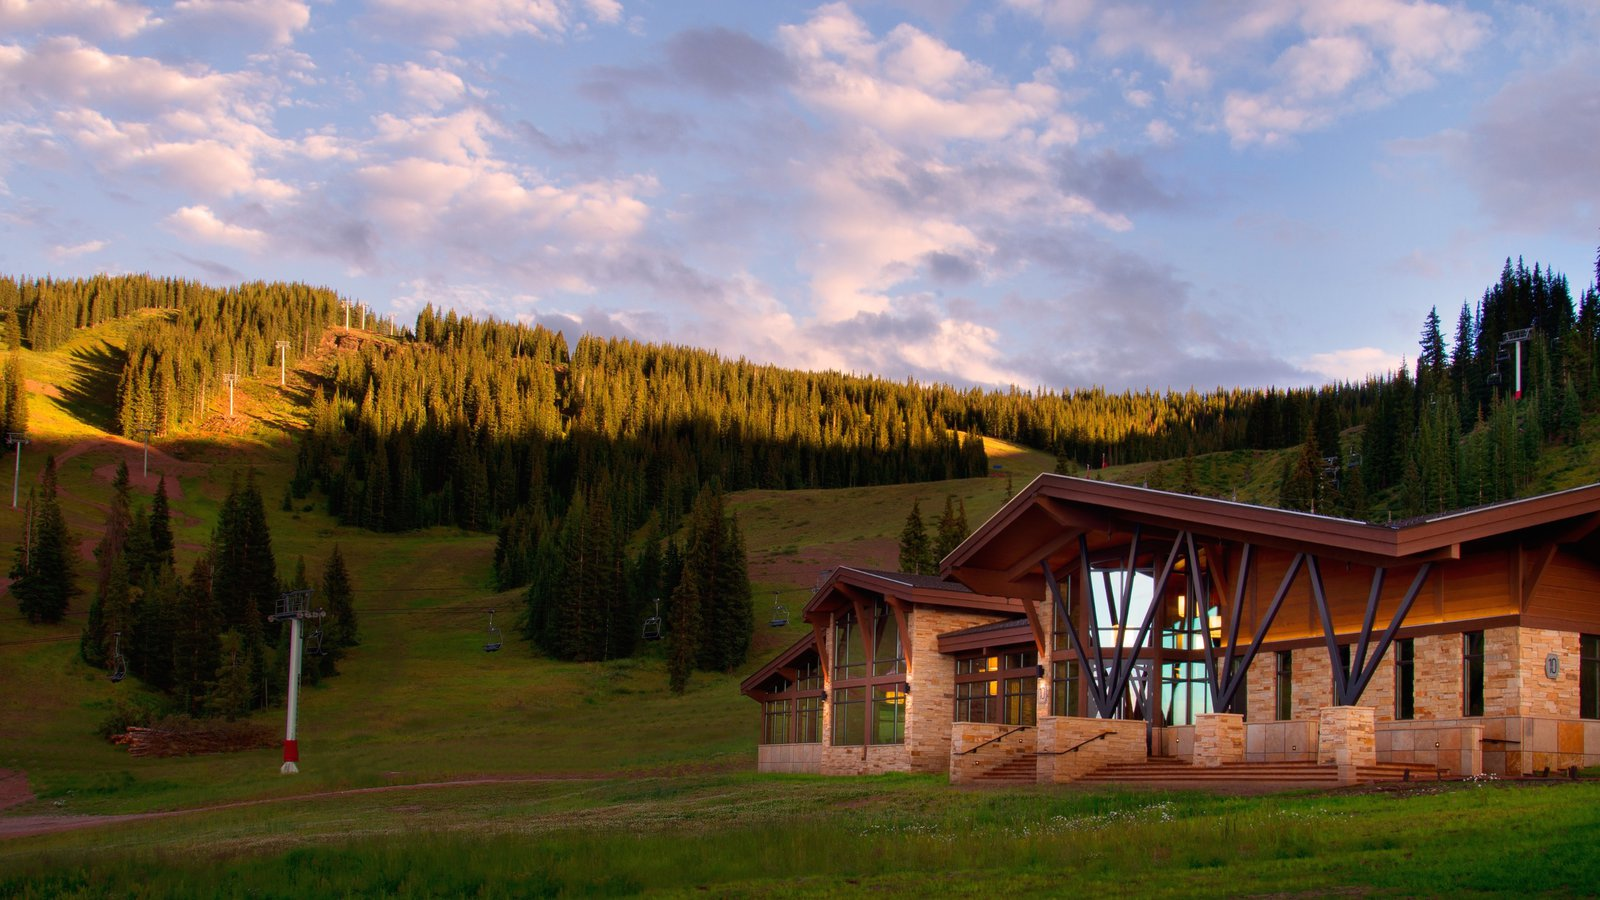 Vail ski resort featuring a luxury hotel or resort and a sunset